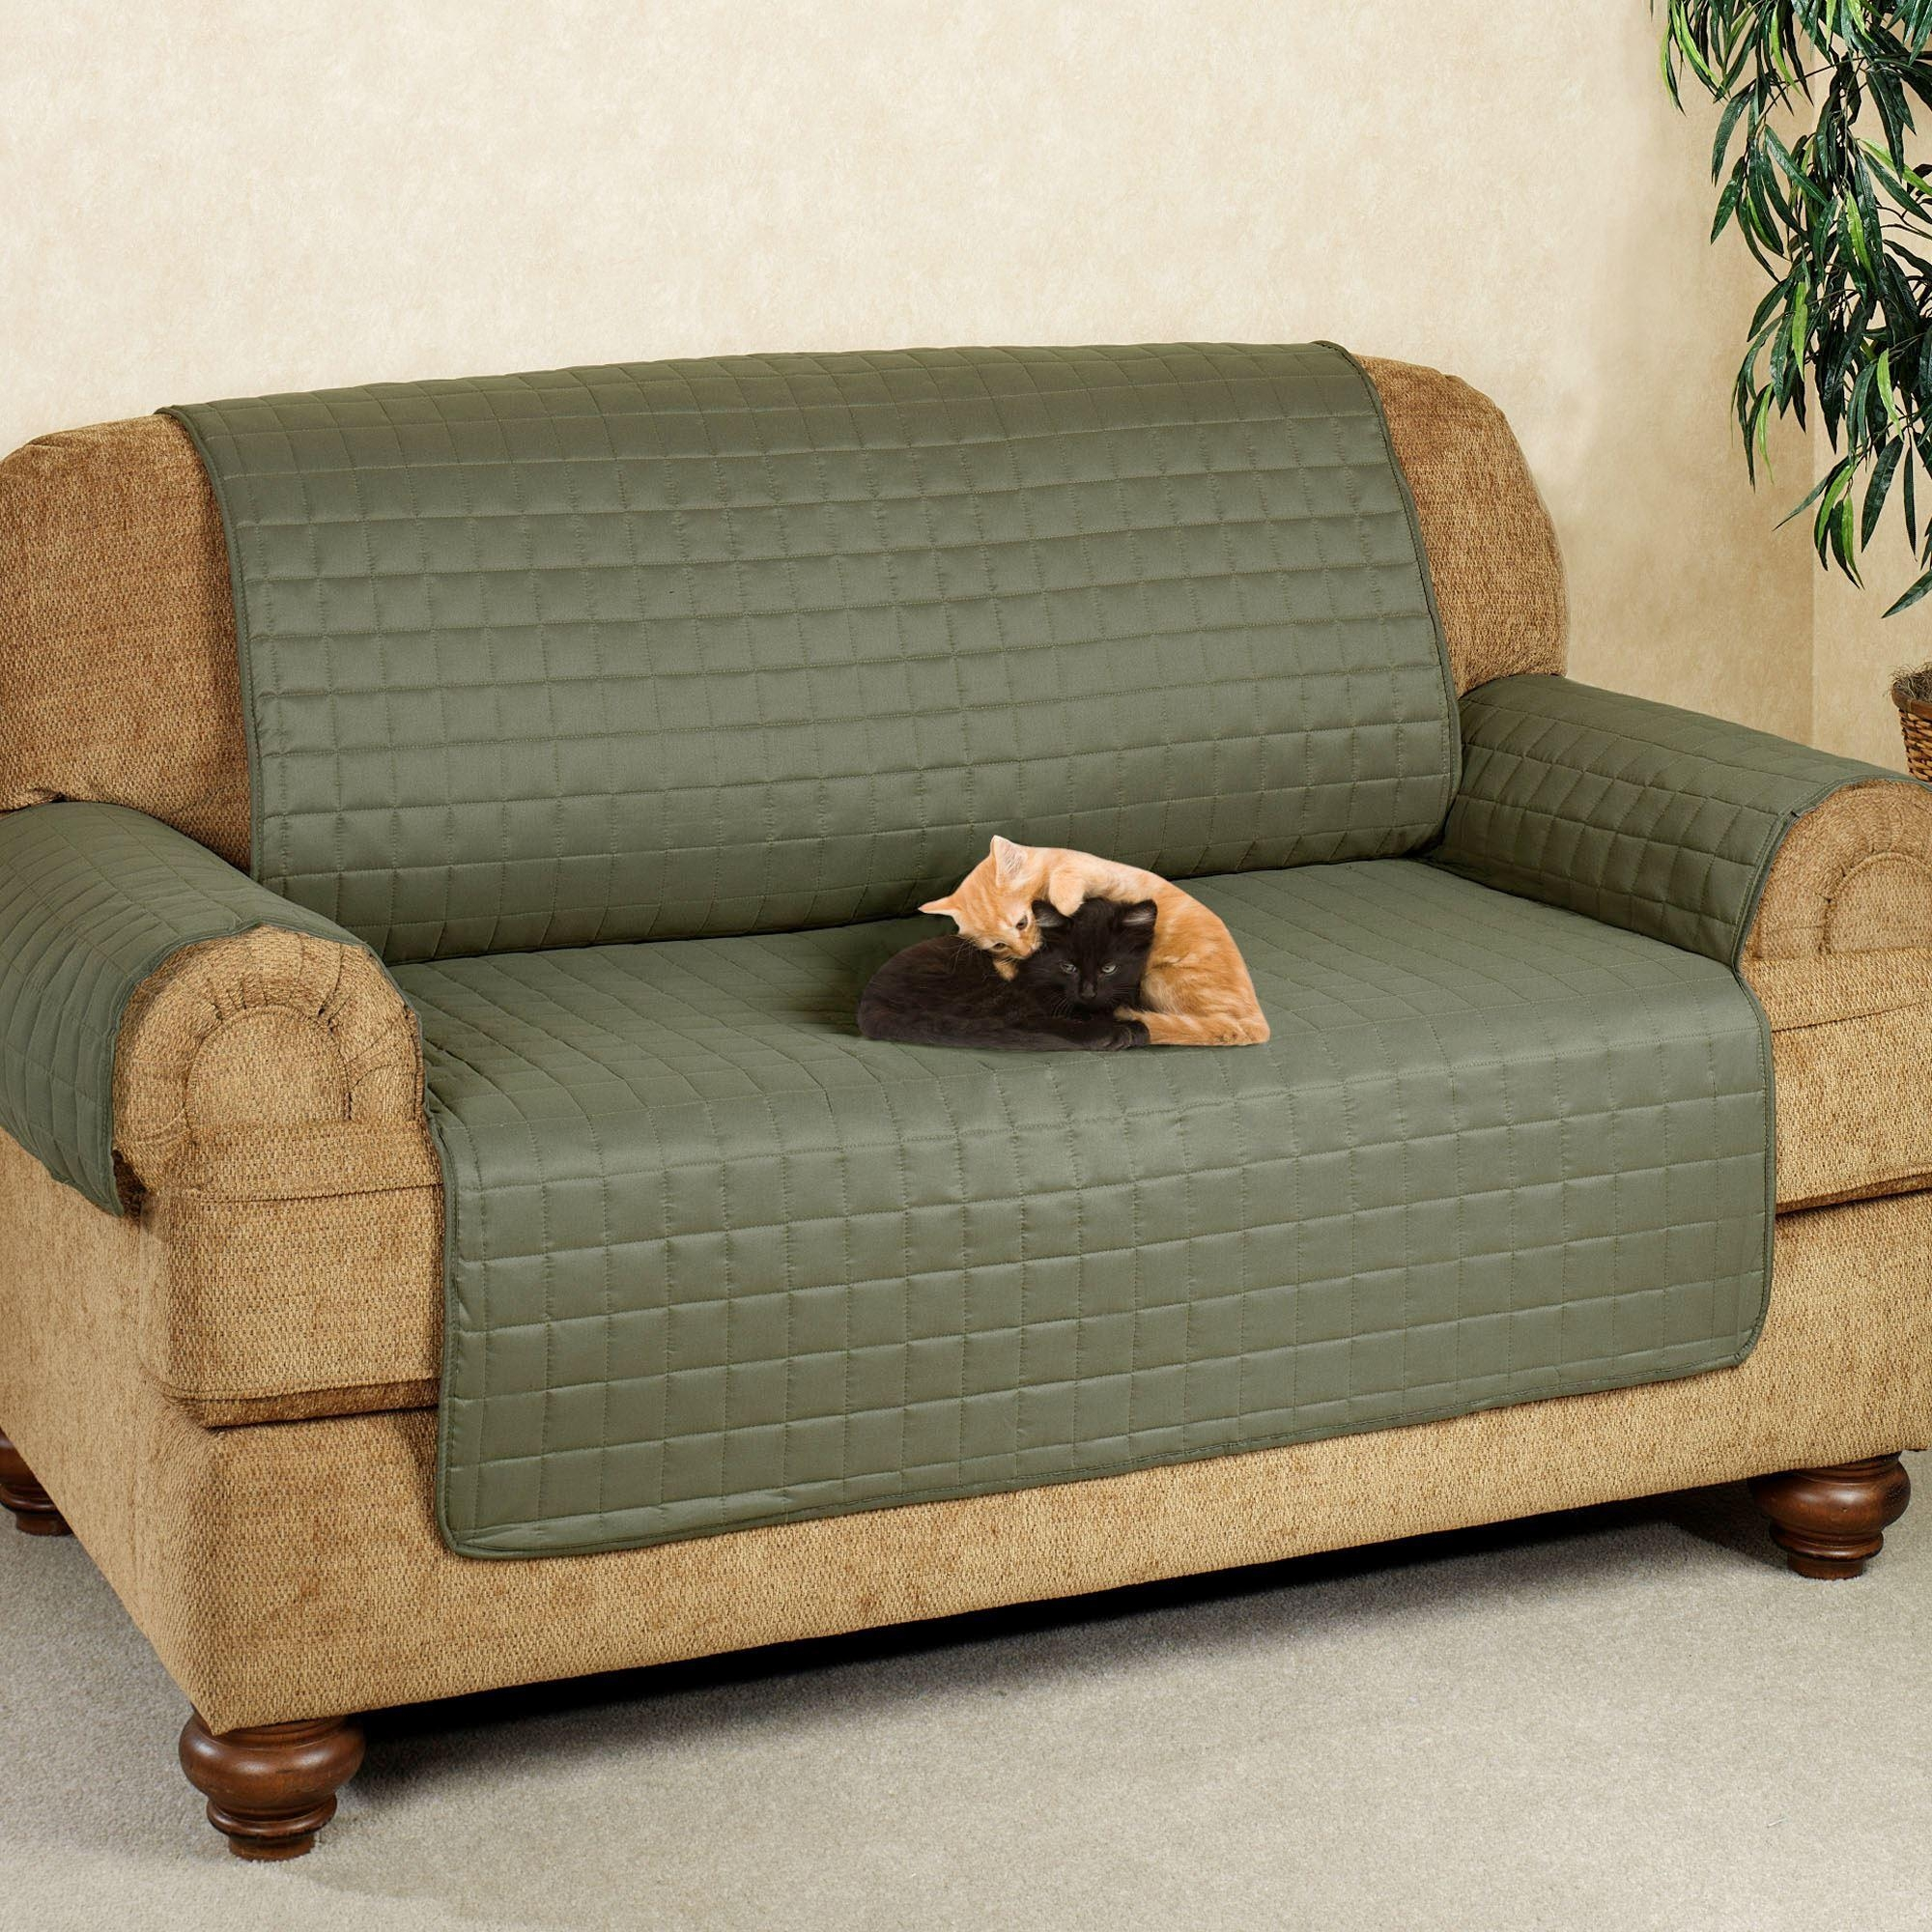 Microfiber Pet Furniture Covers With Tuck In Flaps For Arm Protectors For Sofas (Image 10 of 20)